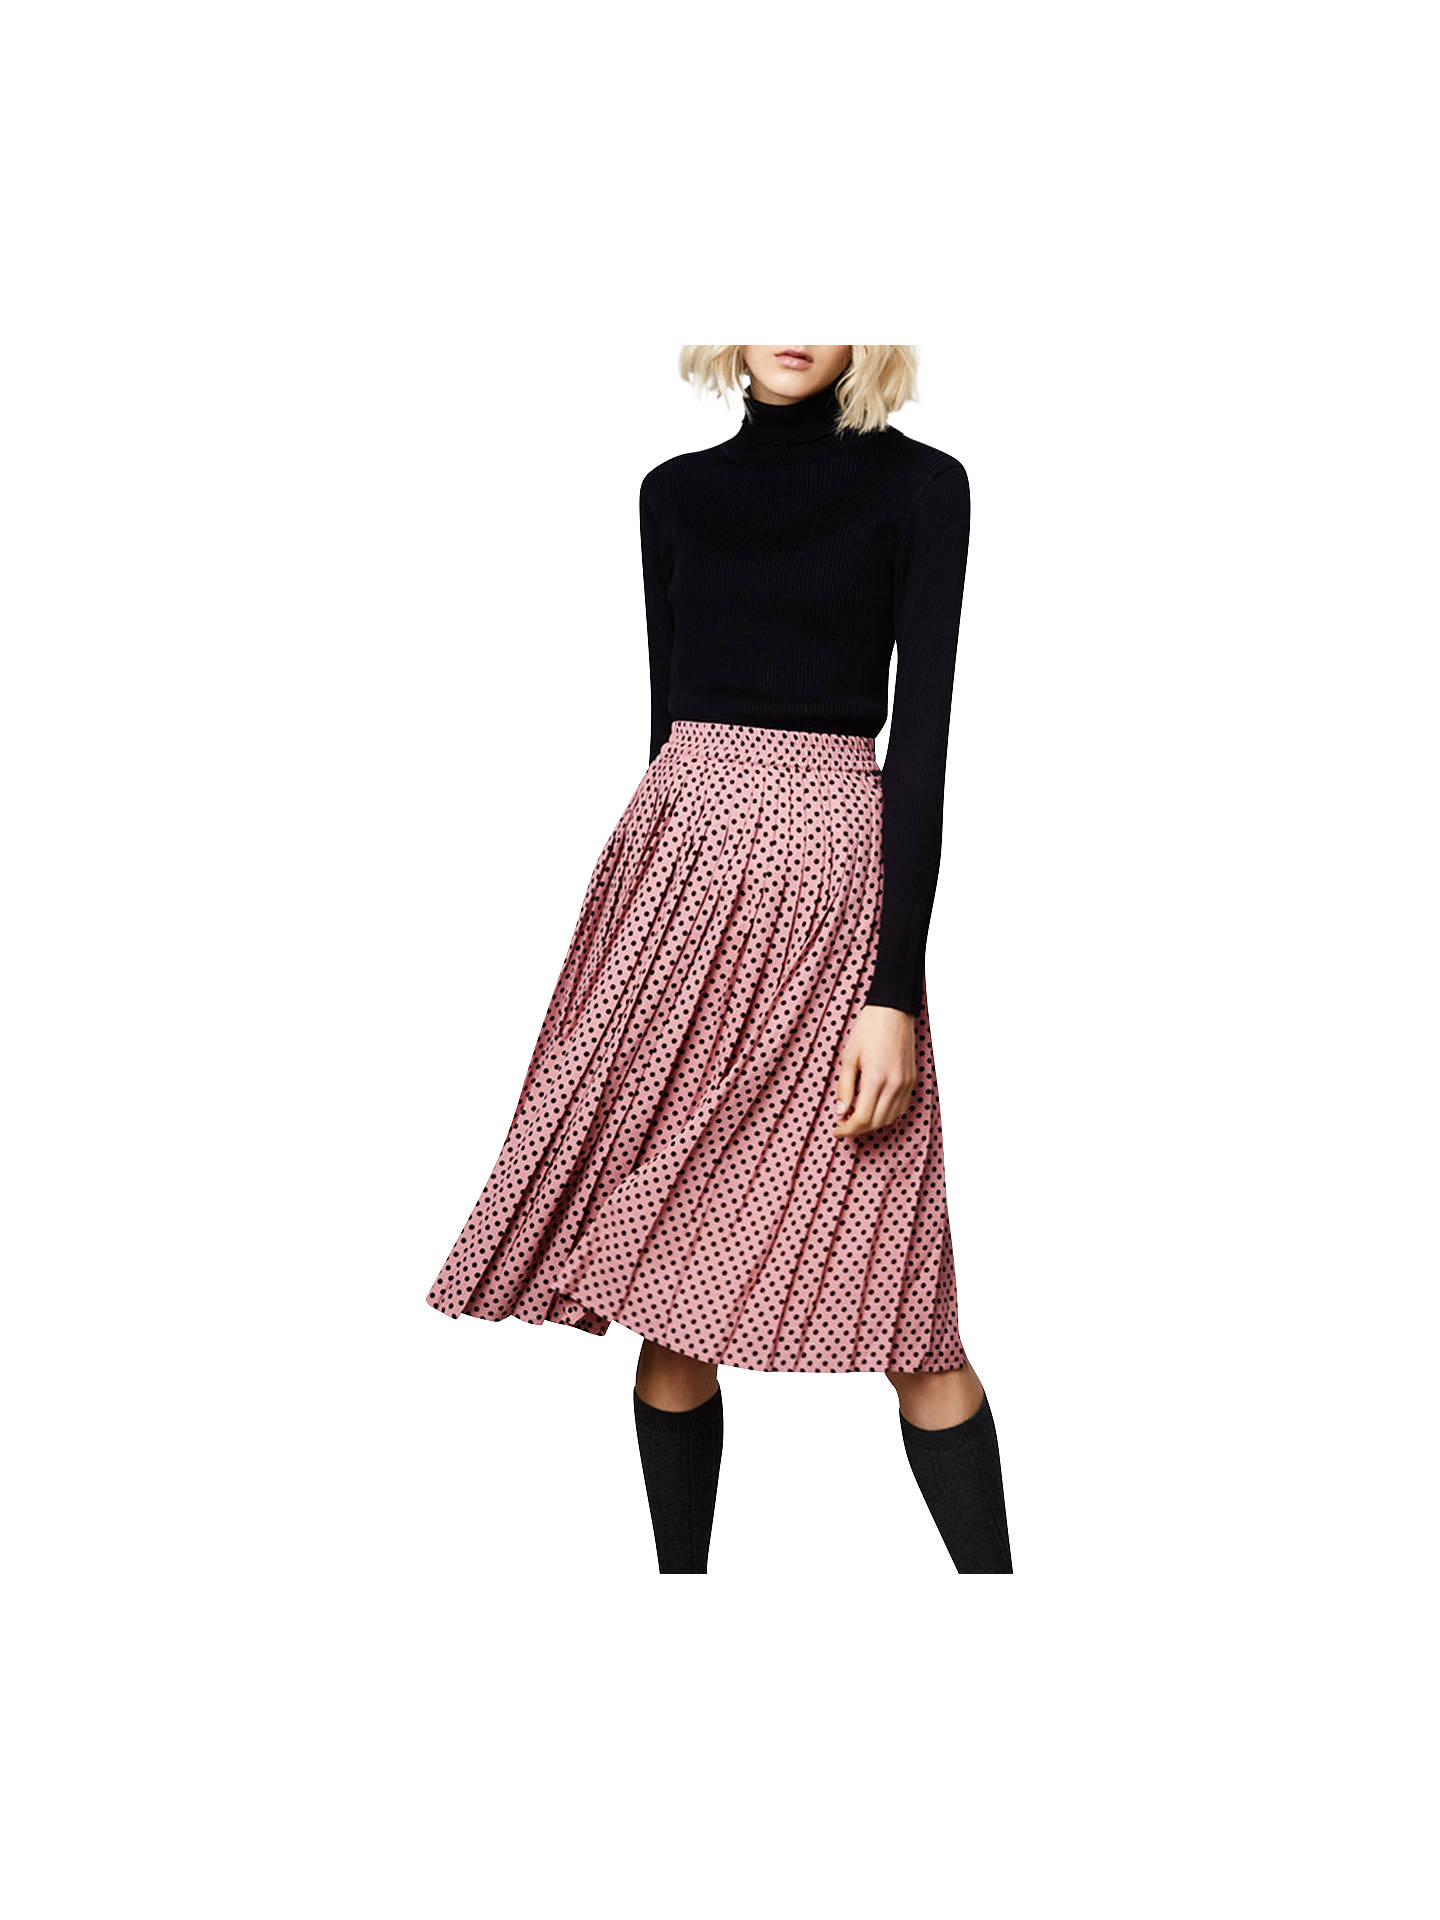 f2495fac8fb1 ... Buy Compañía Fantástica Polka Dot Print Pleated Midi Skirt, Pink/Black,  S Online ...